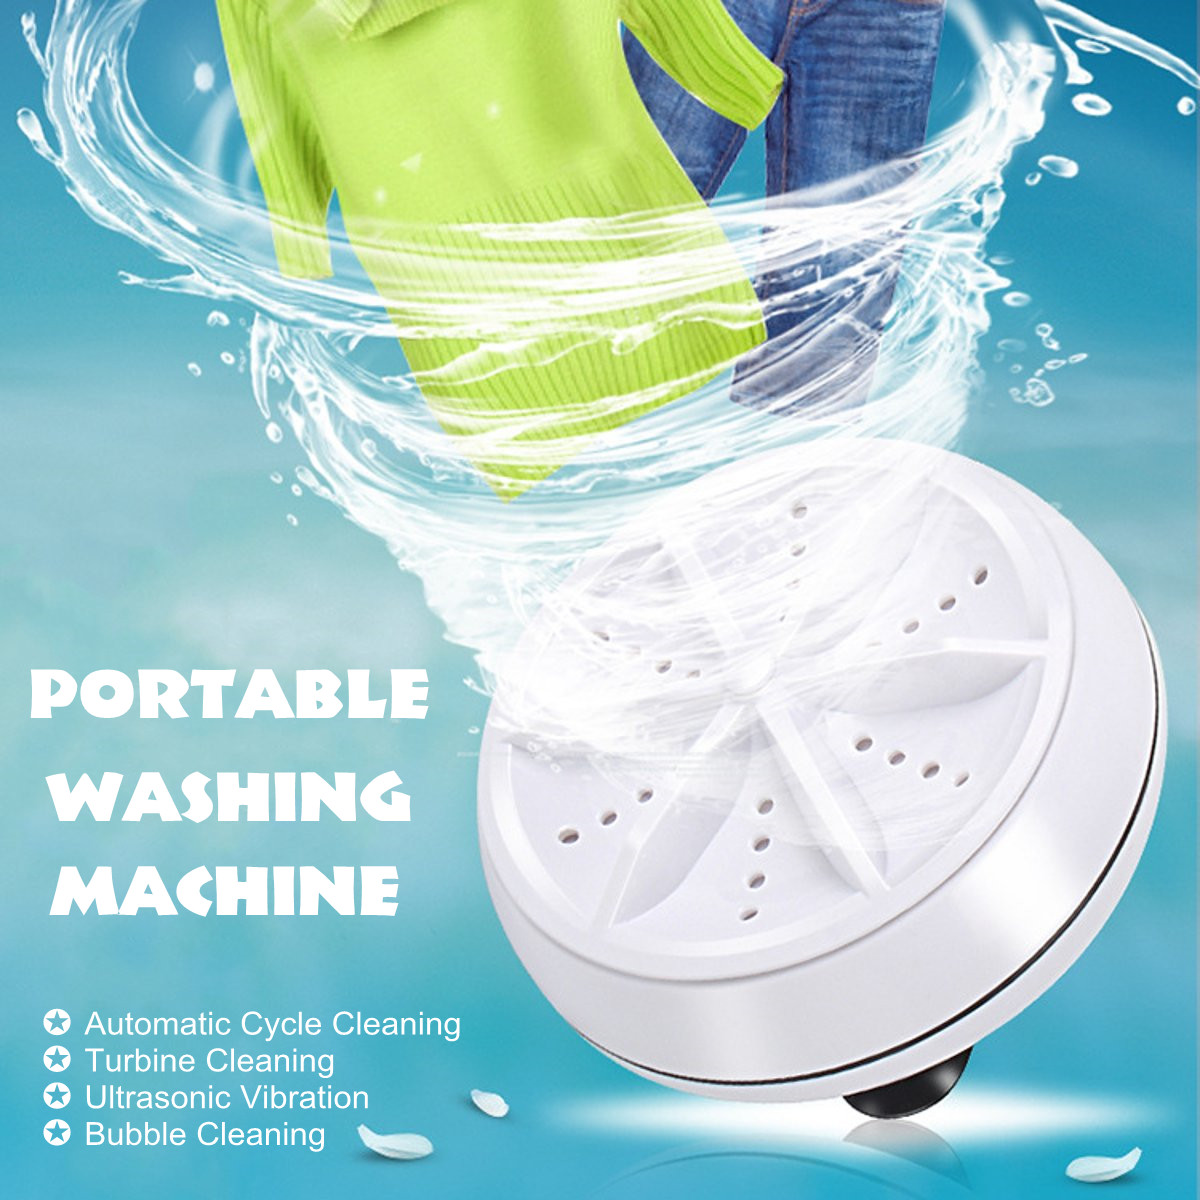 Mini Ultrasonic Washing Machine Portable Turbo Personal Rotating Washer Convenient For Travel Home Business Trip USB 6W 10V